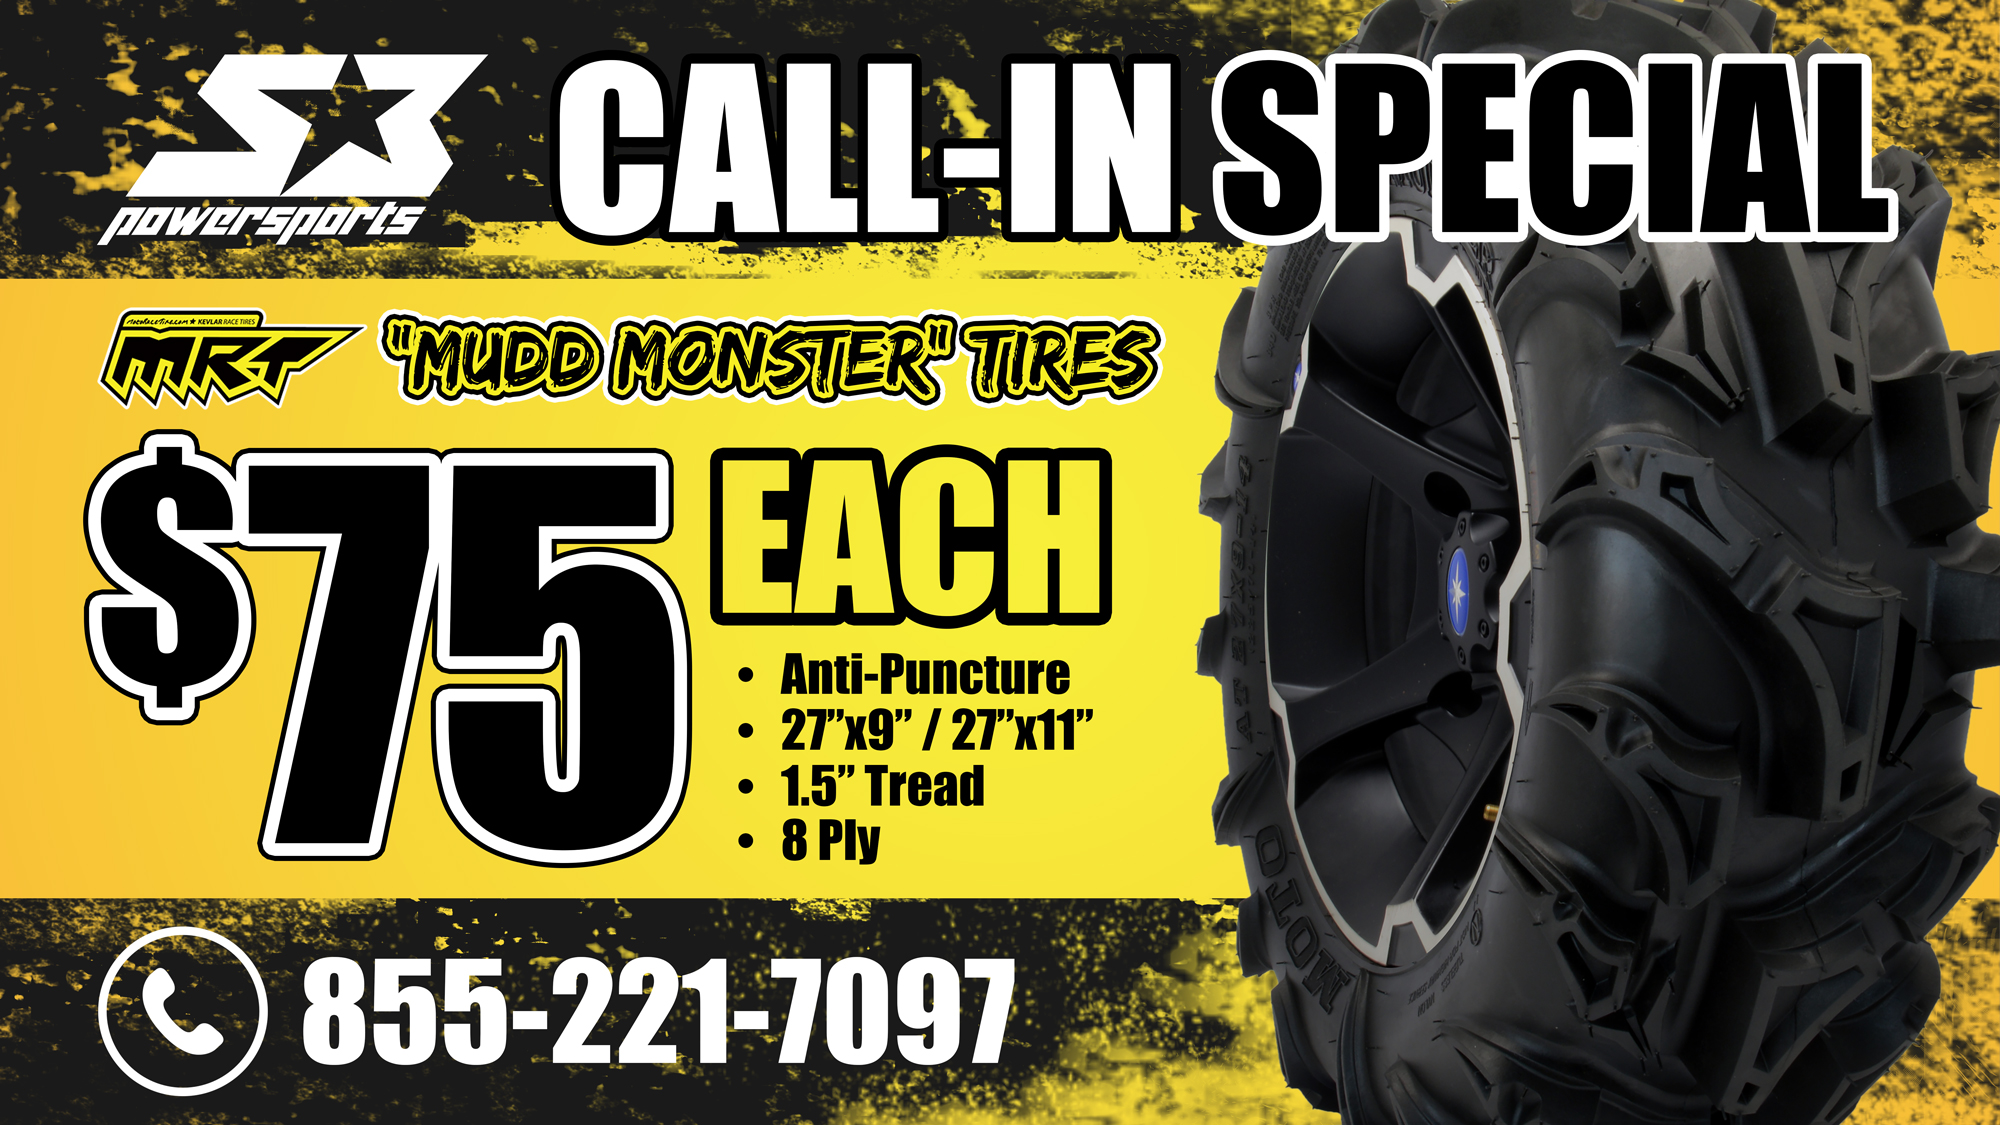 Call-In Special!